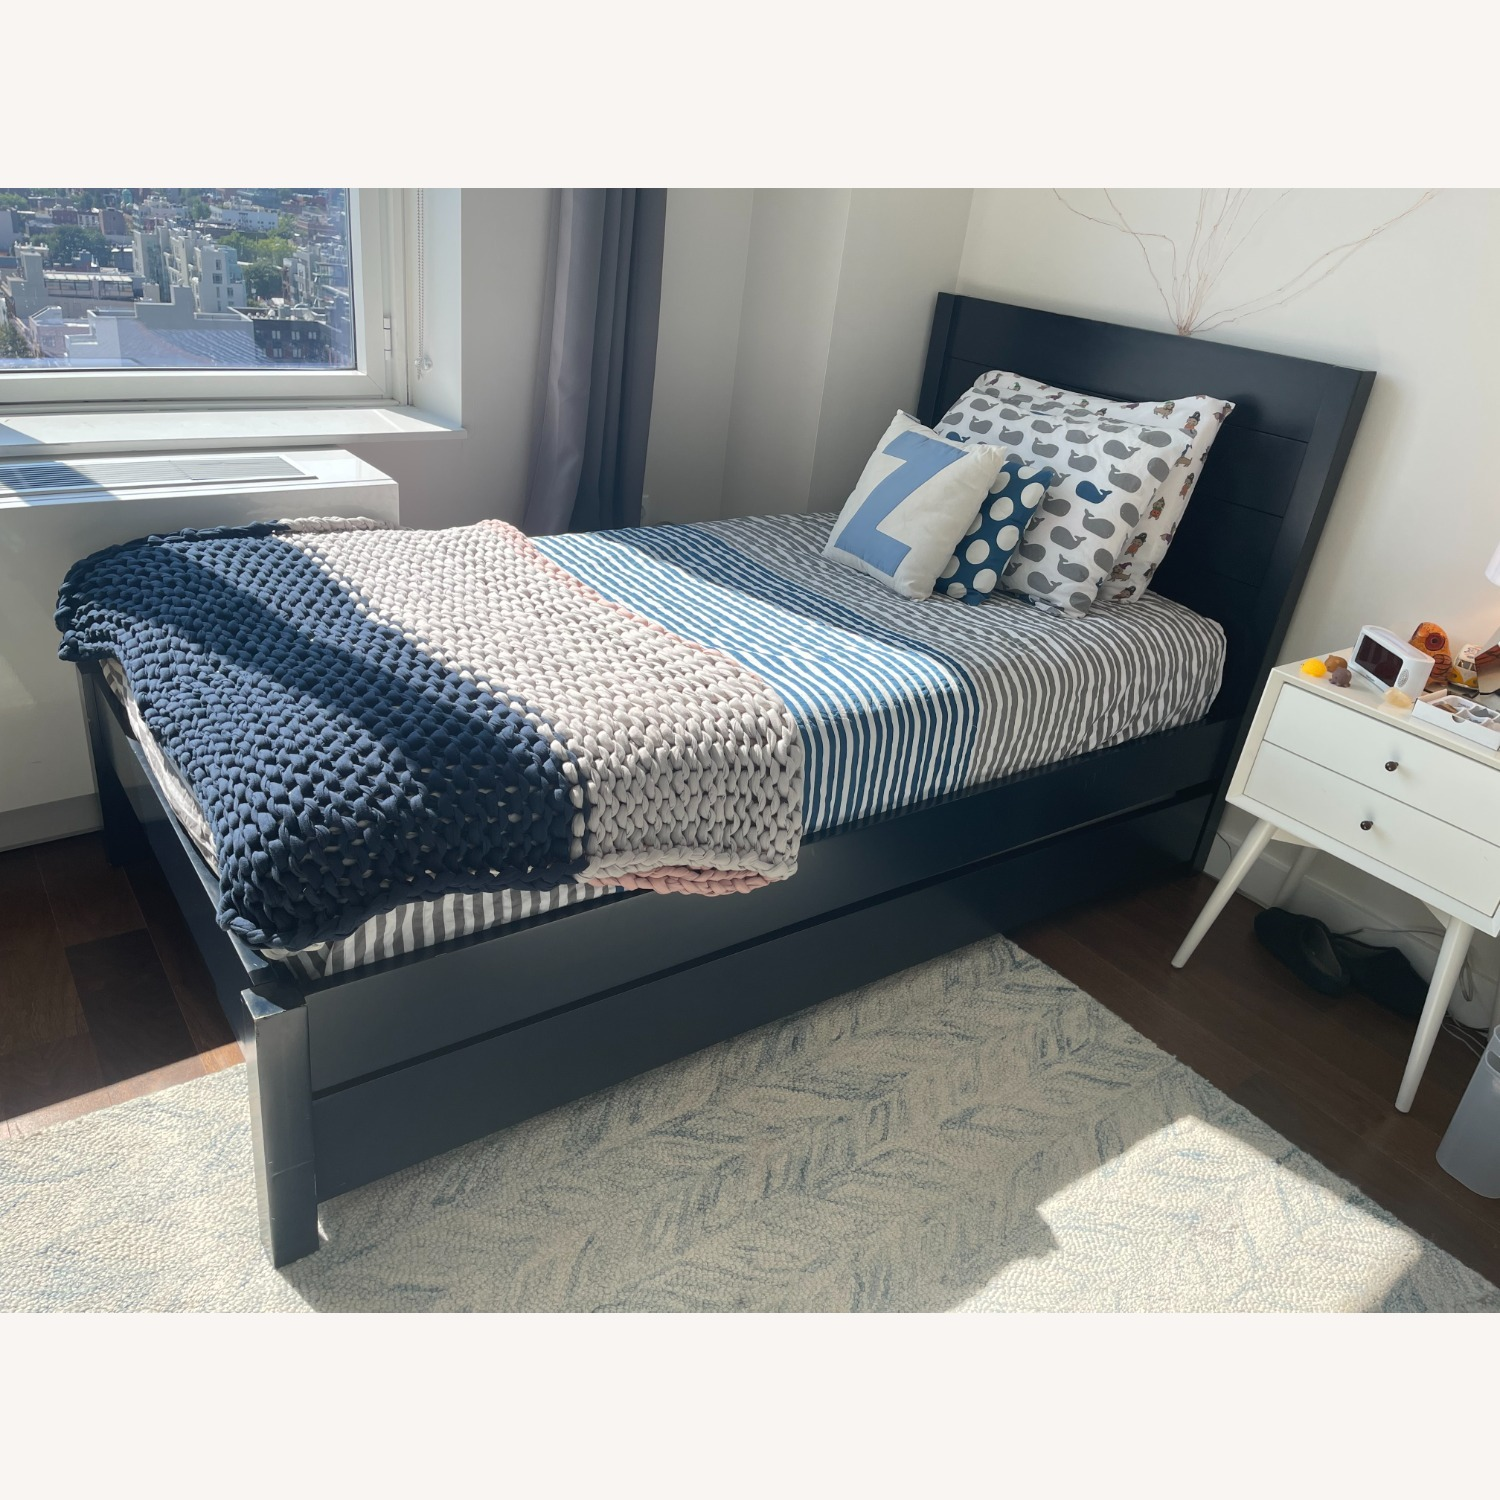 The Land of Nod/Crate Twin Bed + Trundle - image-2